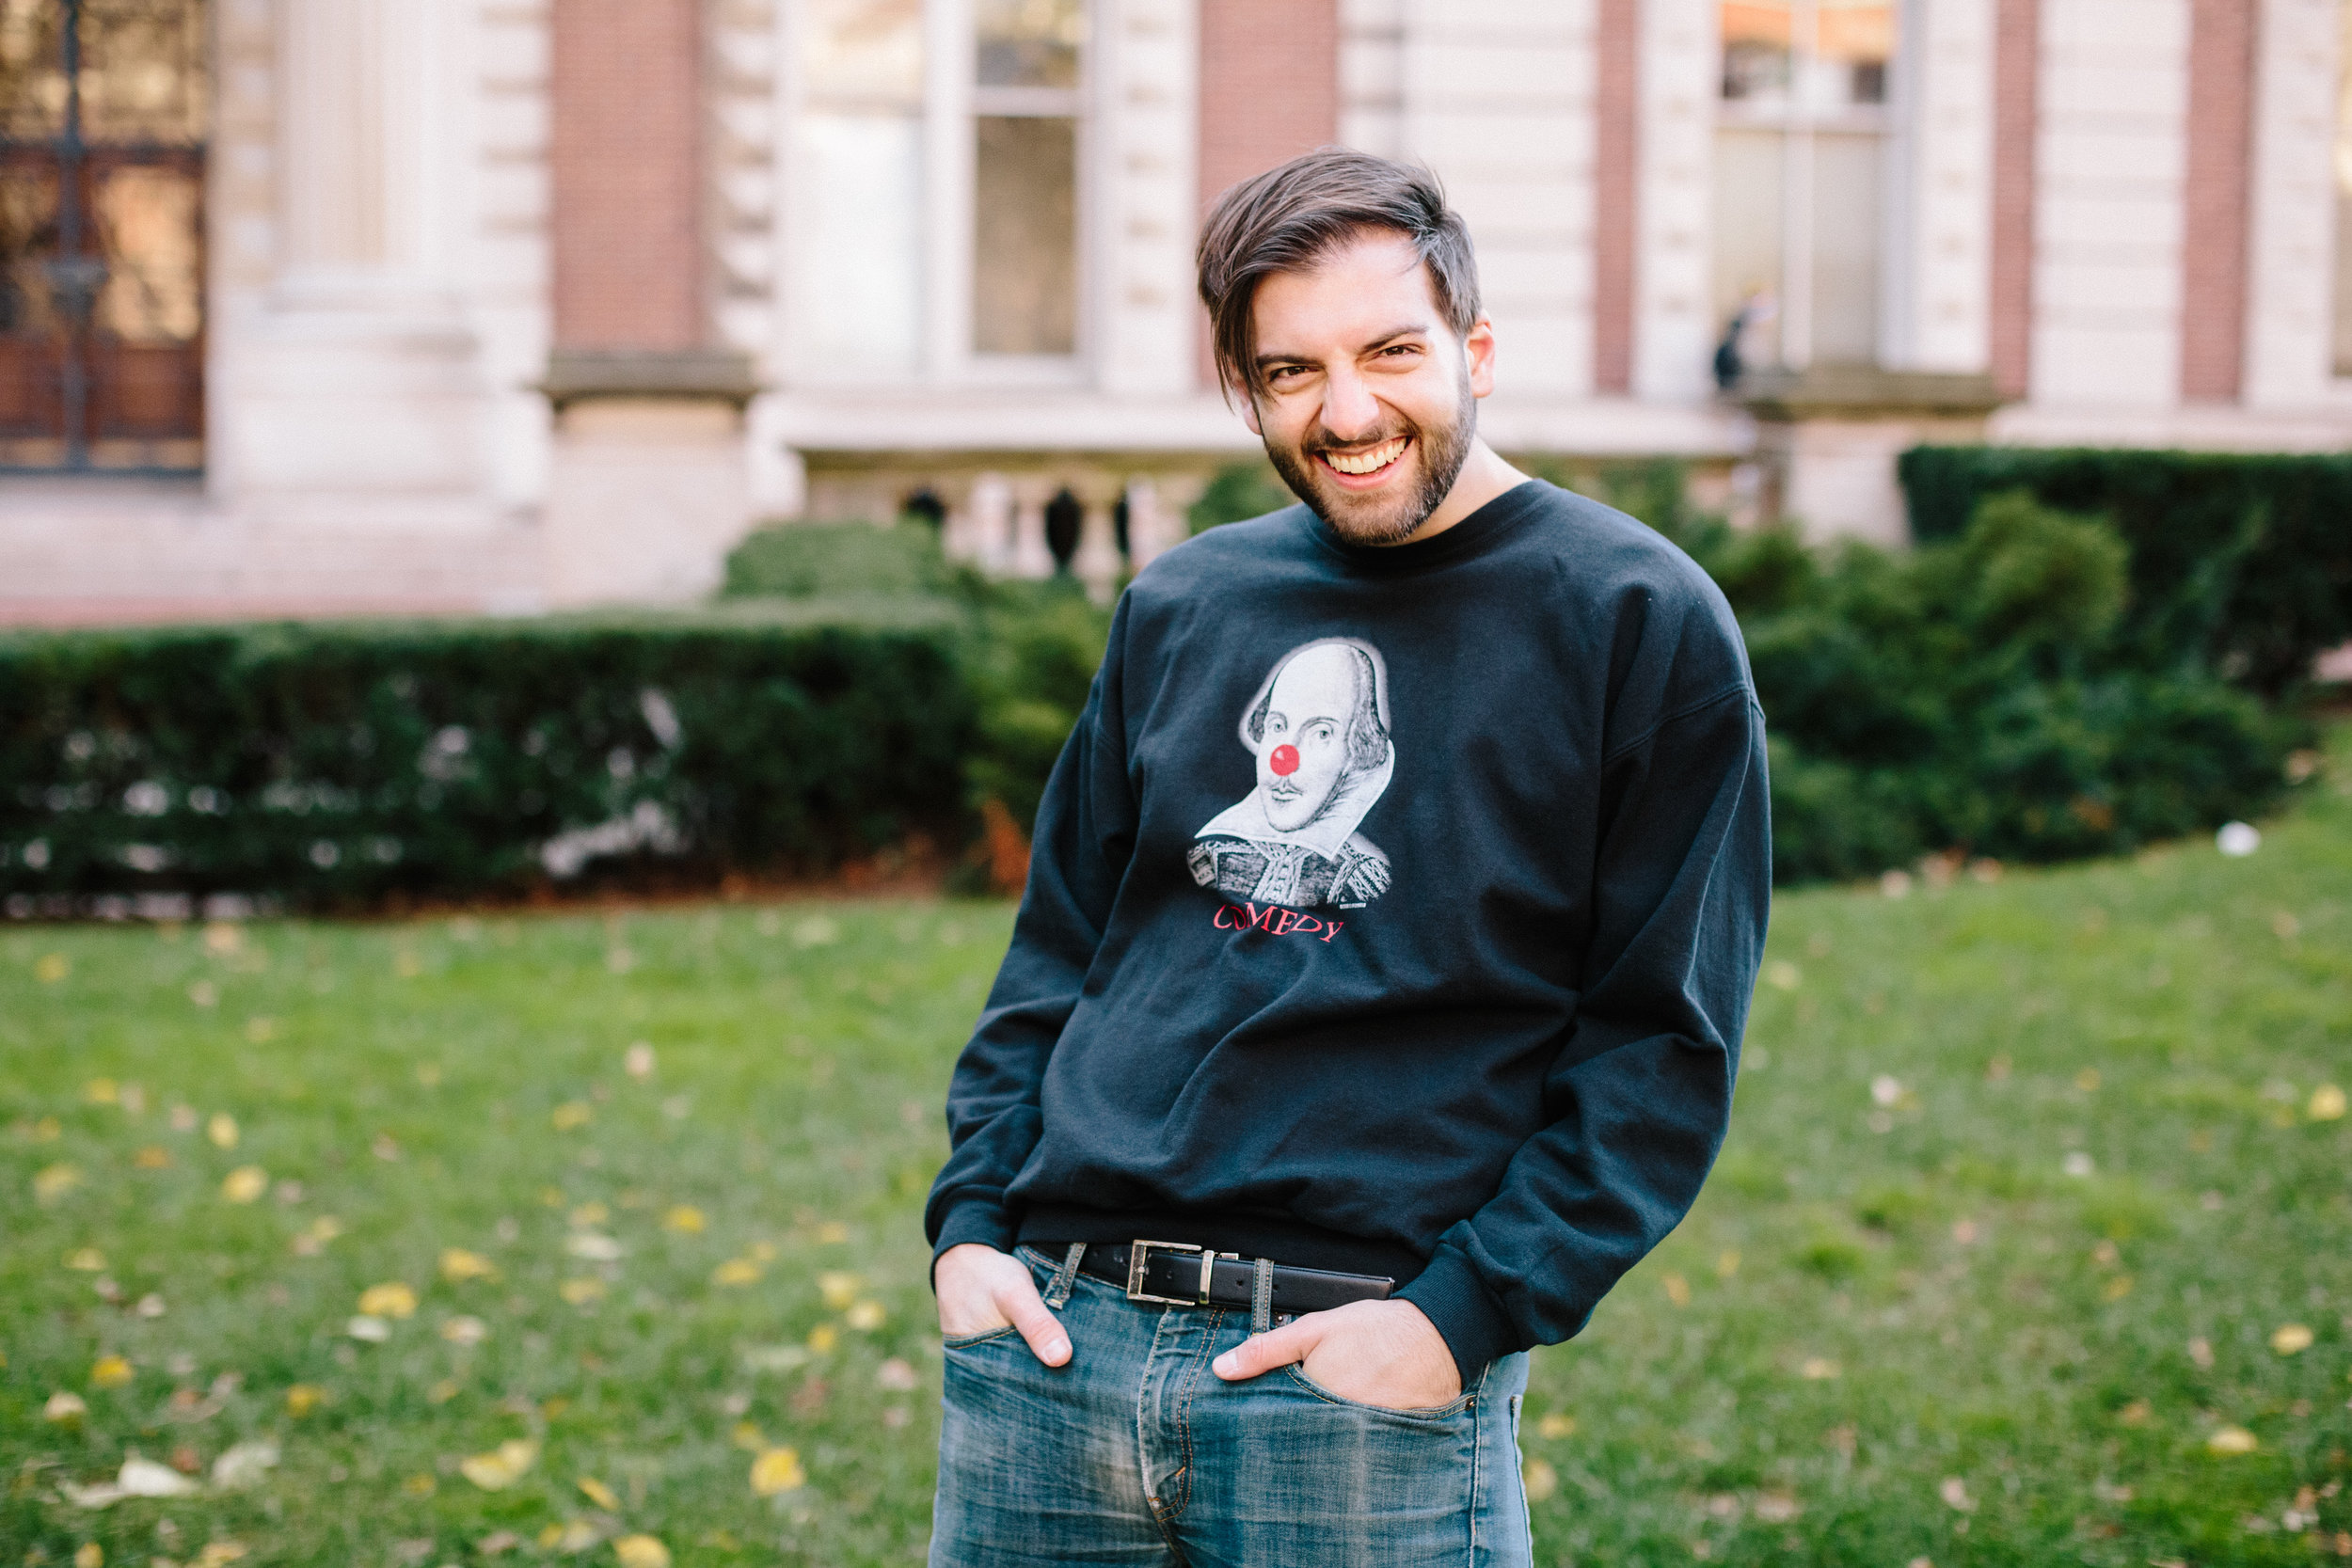 Brad likes to do it all - Whether on stage or behind the scenes, whether by land or by sea, Brad has enjoyed a varied career in the performing arts and entertainment industries. His wide experiences range from classical opera, to musical theatre, to contemporary plays, and to plenty more in between. A world traveler, theatre misfit, nerd, and enthusiast, he balances the disciplines of singing, acting, writing, directing, and producing…and kicking virtual butt at Smash Brothers…